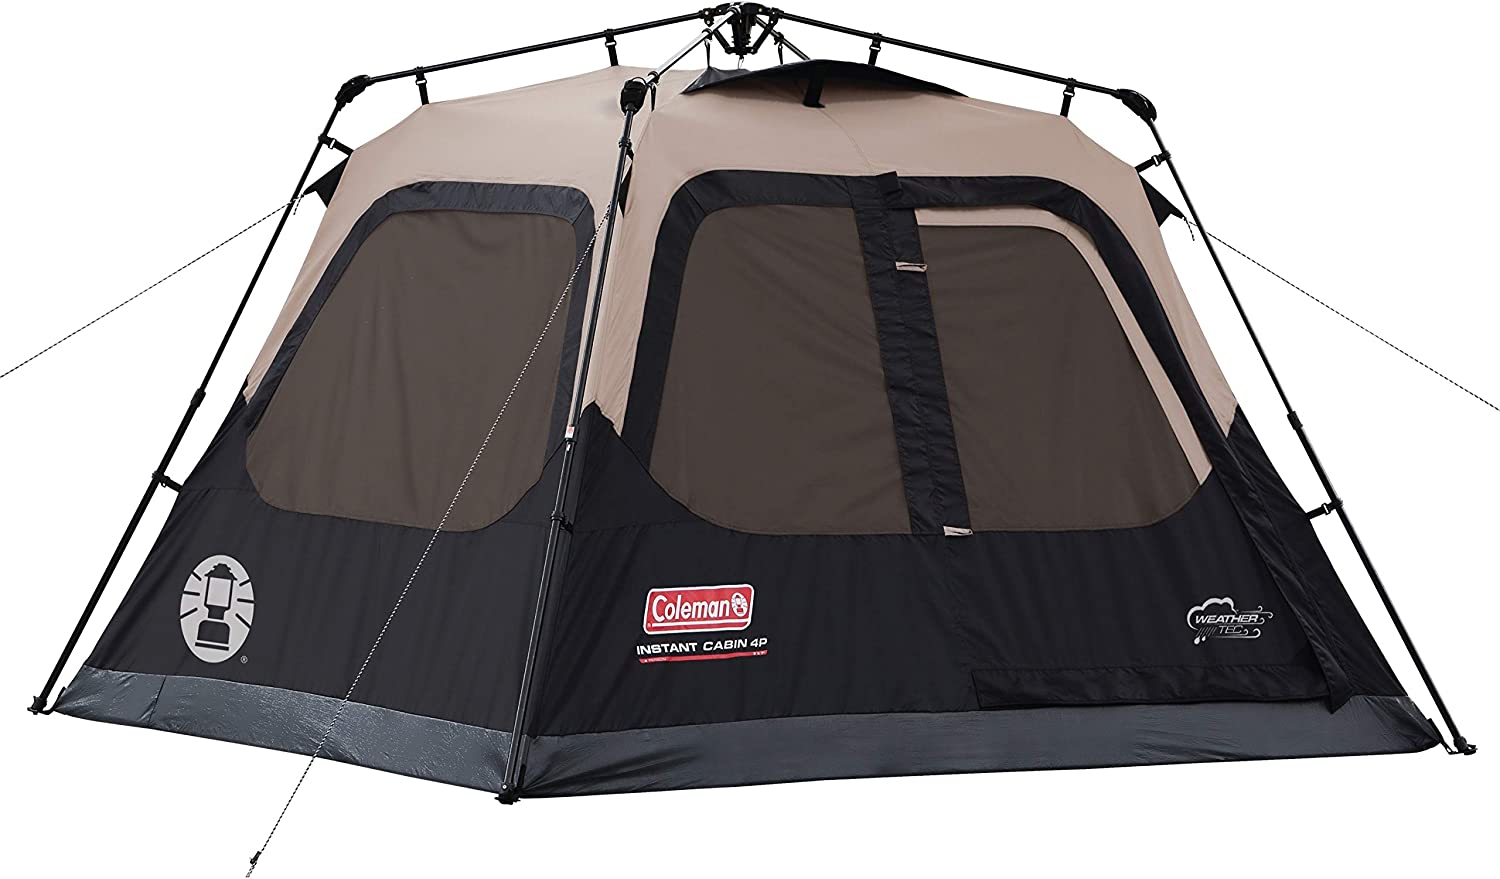 Coleman Instant Cabin 4 Person Tent Review